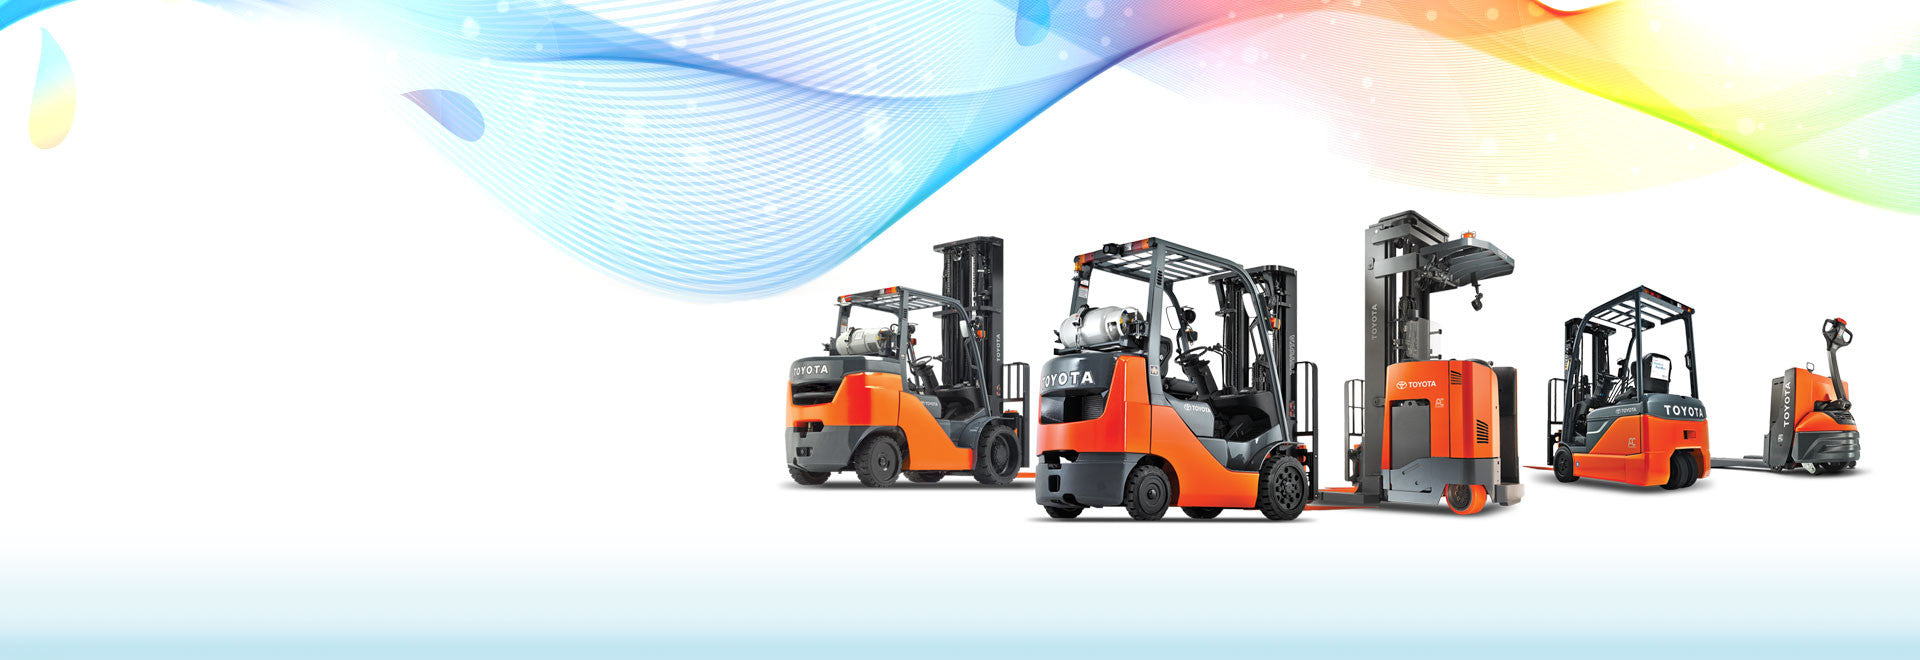 Select location type business with dock or forklift business without - Toyota Forklifts